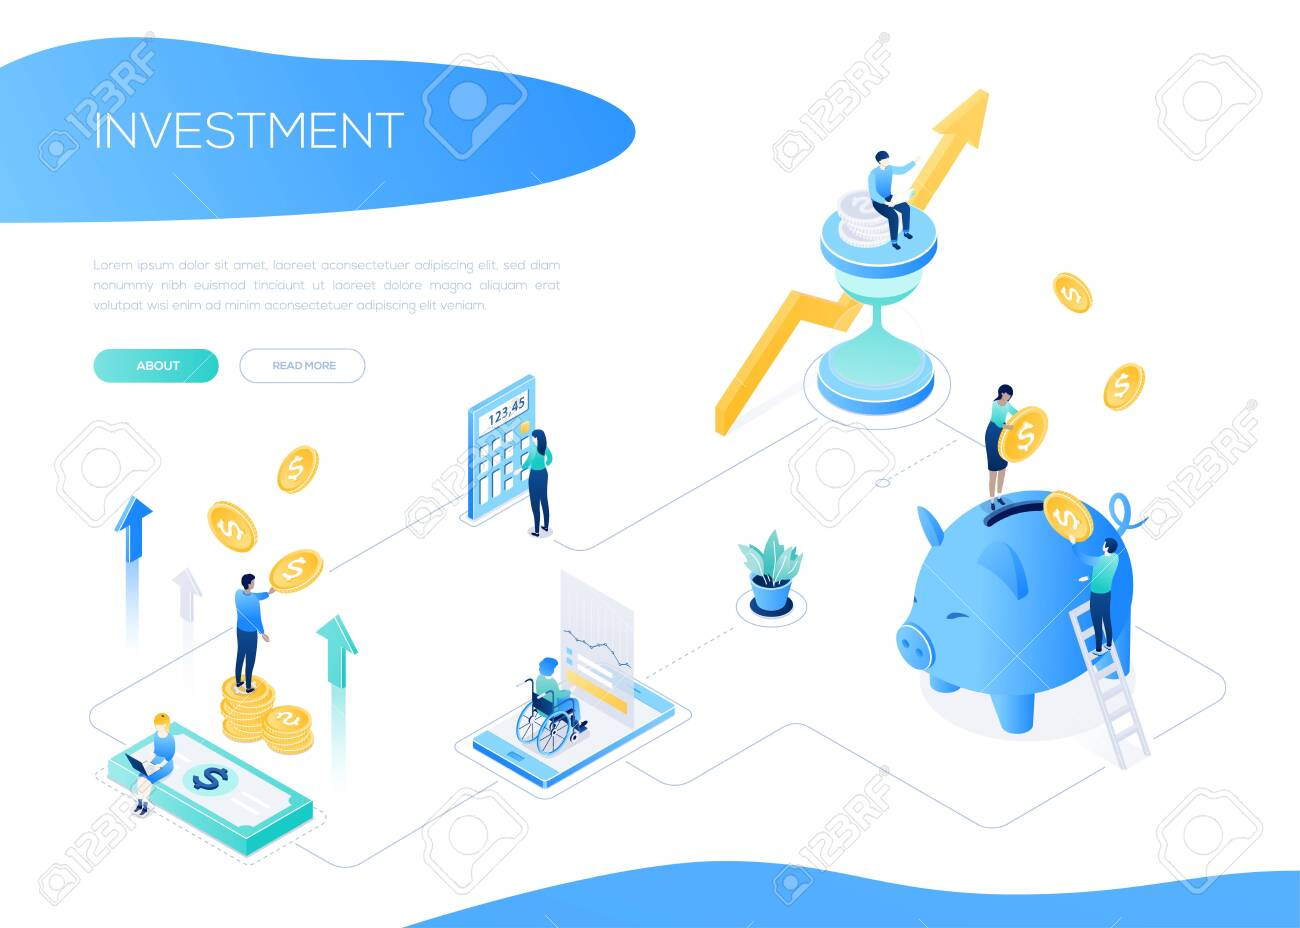 Investment concept - colorful isometric vector web banner on white background with copy space for text. A header with male, female colleagues standing on coins stack. Images of piggy bank, calculator - 132708104